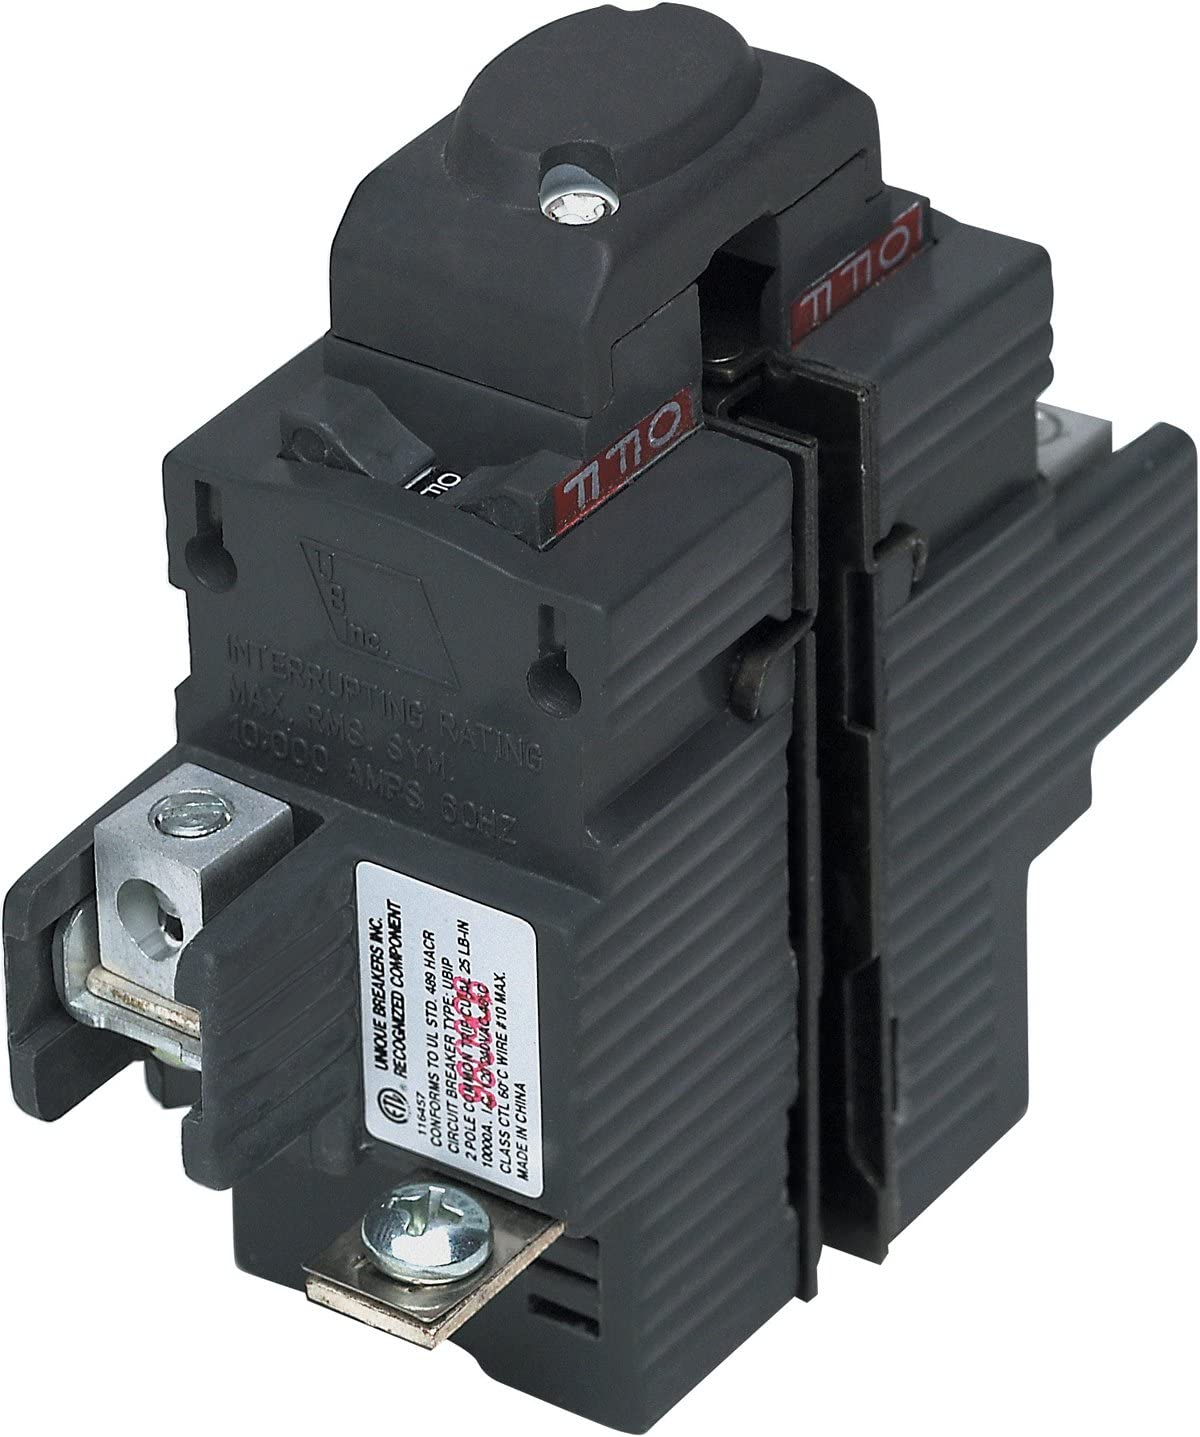 UBIP220-New Pushmatic P220 Replacement. Two Pole 20 Amp Circuit Breaker Manufactured by Connecticut Electric.